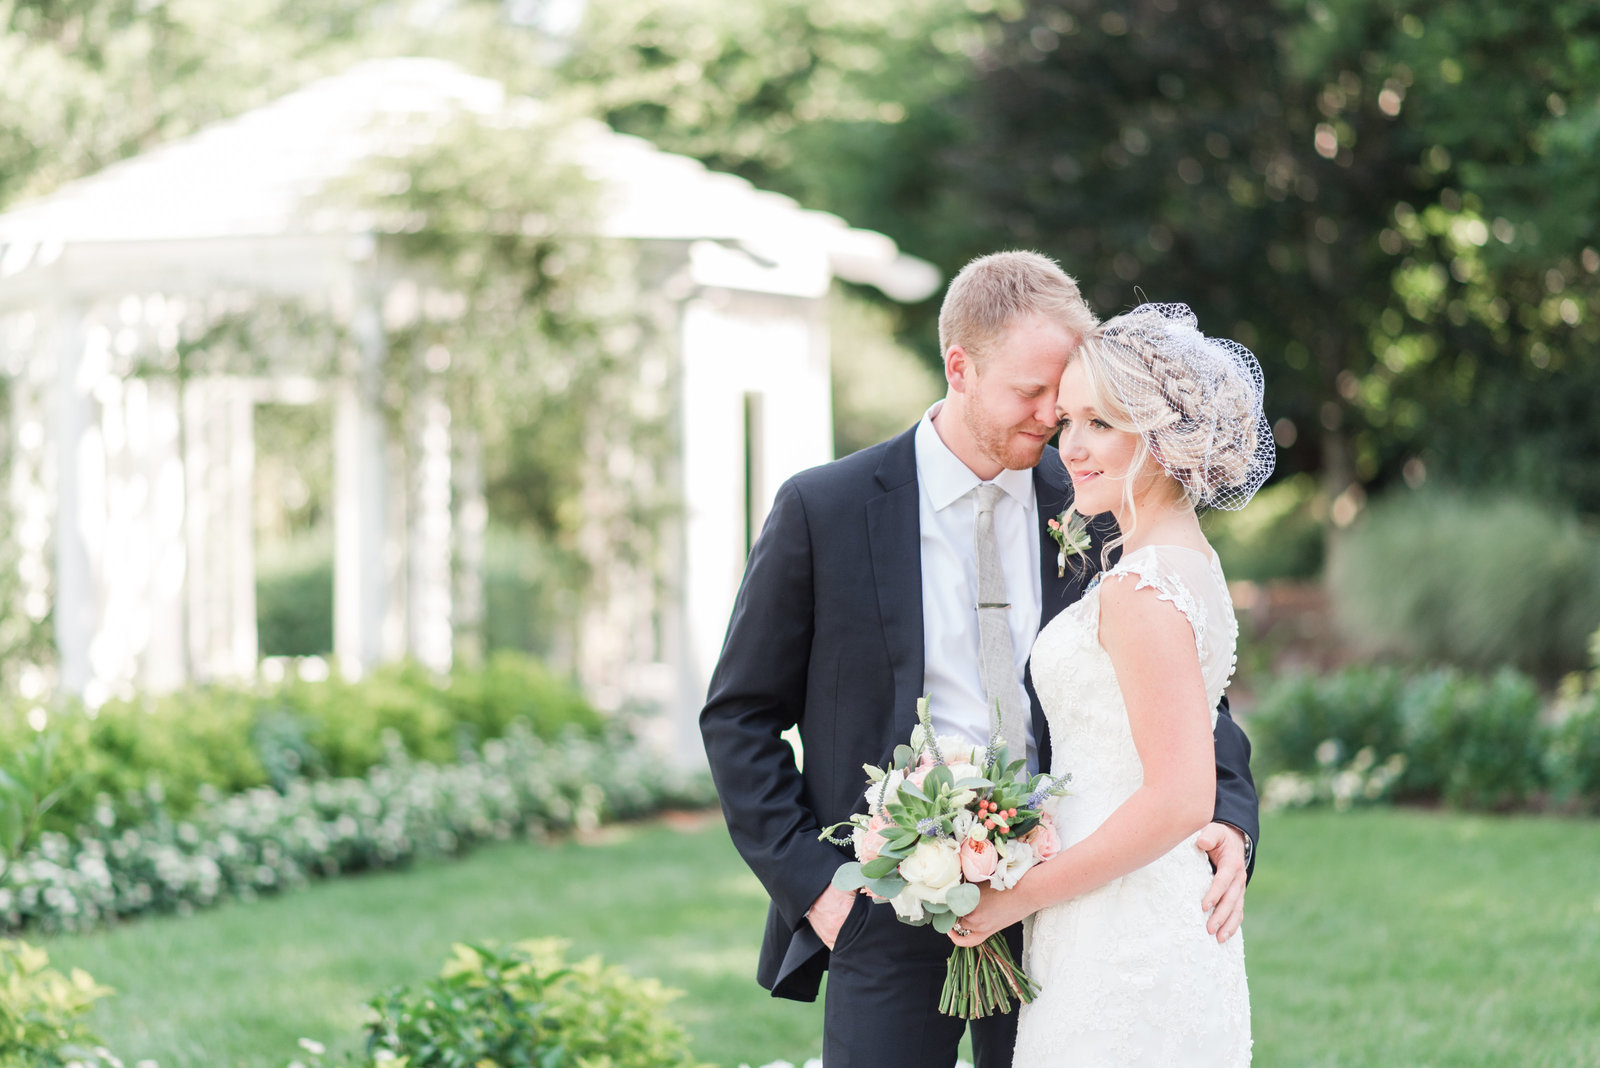 lewis-ginter-richmond-virginia-garden-wedding-photographer-photo92